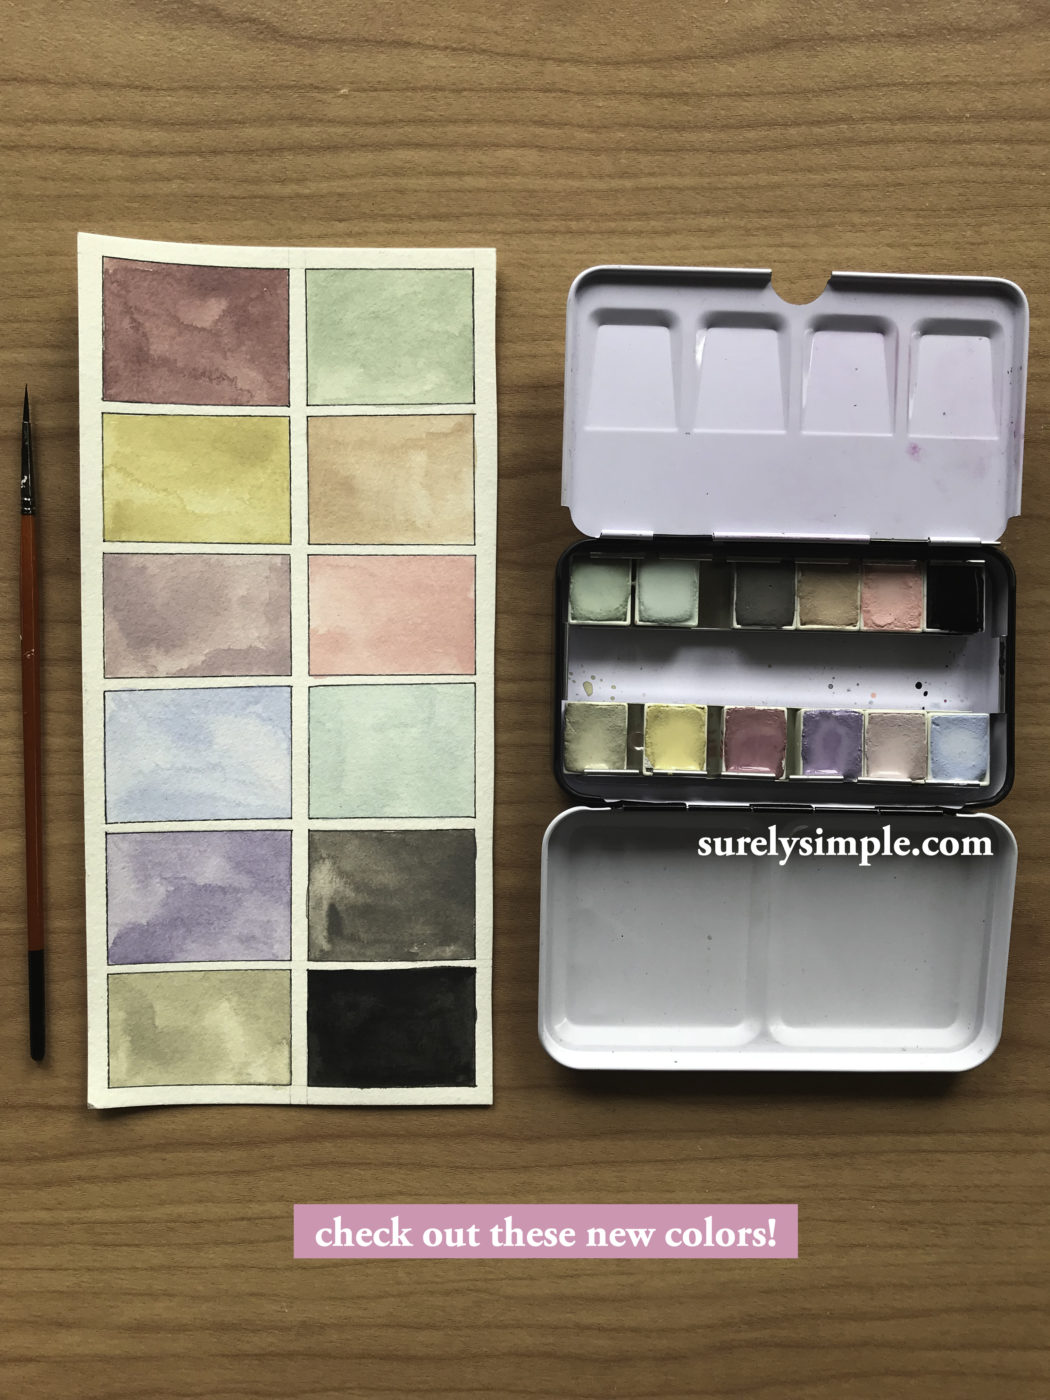 Watercolor Review: Prima Marketing Inc Vintage Pastel! (New Release!) - via surelysimple.com // IG: instagram.com/surelysimpleblog